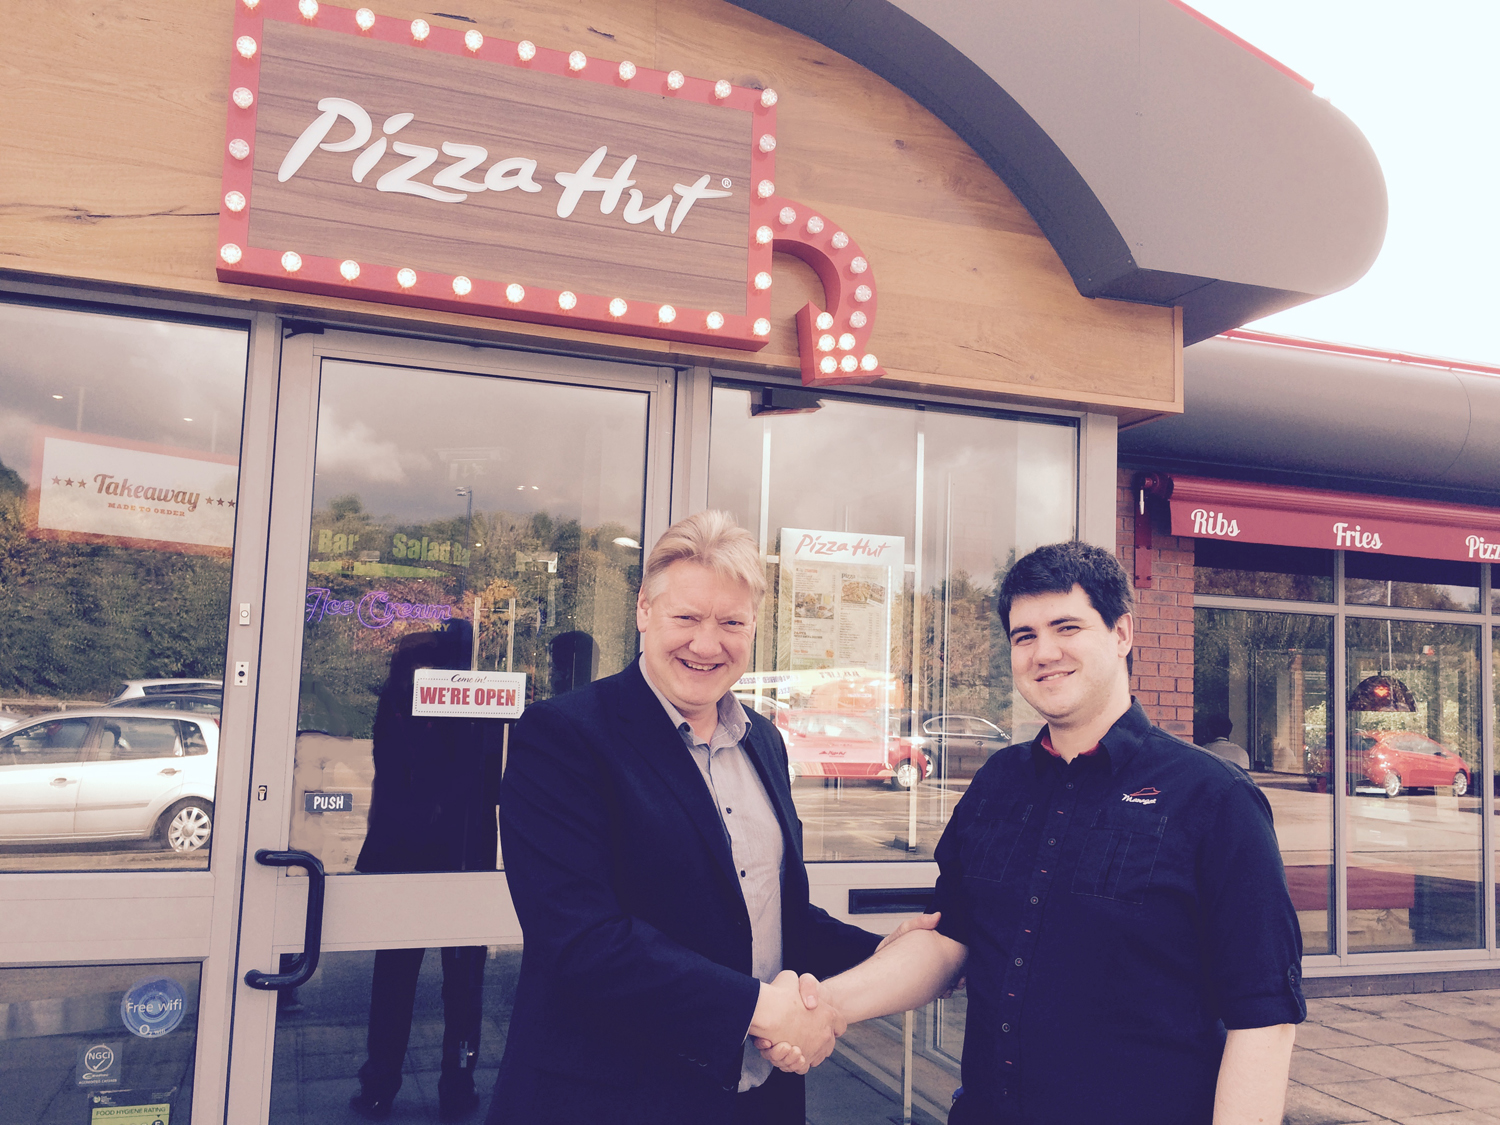 operation management of pizza hut 3,774 restaurant management company pizza hut jobs available on indeedcom restaurant manager, area manager, director of operations and more.